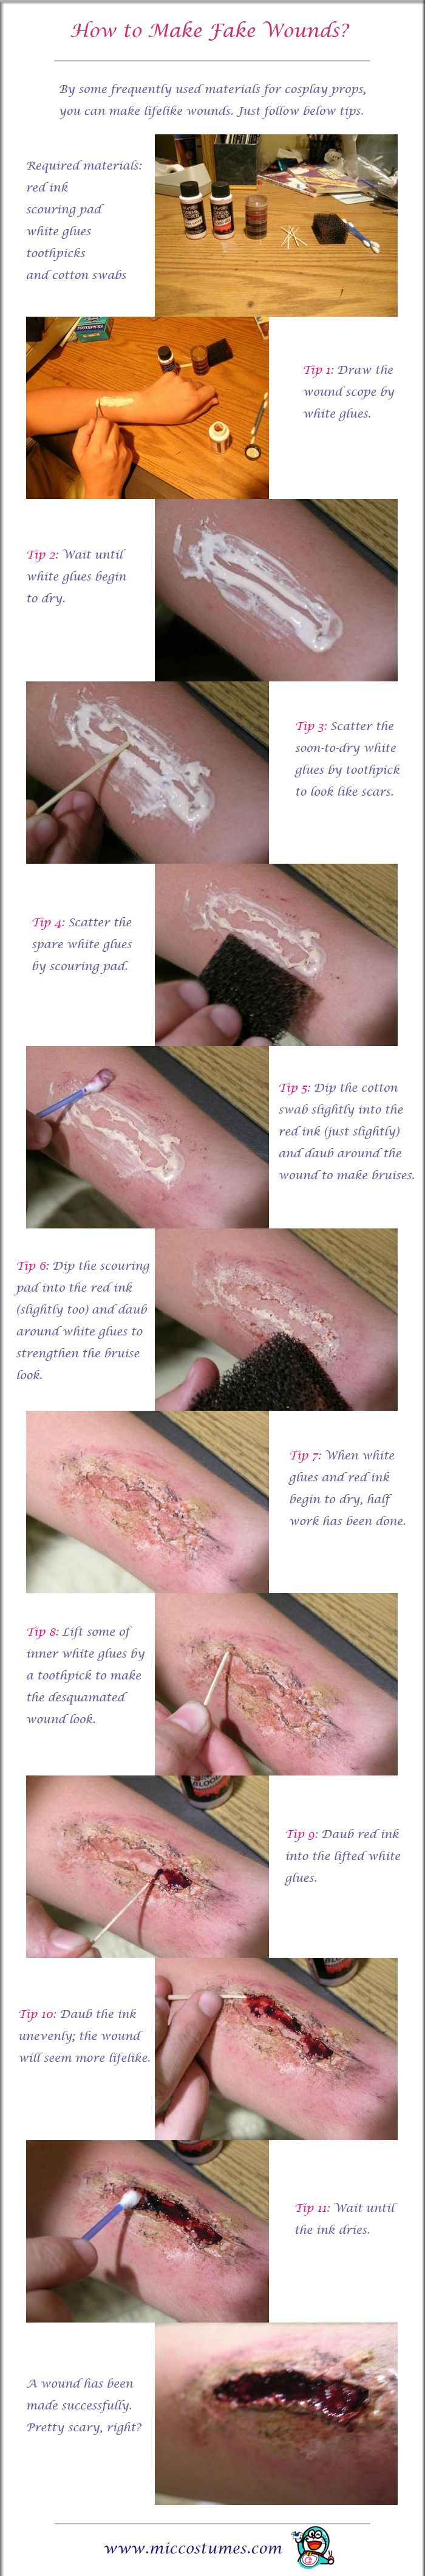 How to Make Fake Wounds For Cosplay |Makeup Fake Wounds | Fake Scars And Scratches | miccostumes.com/blog